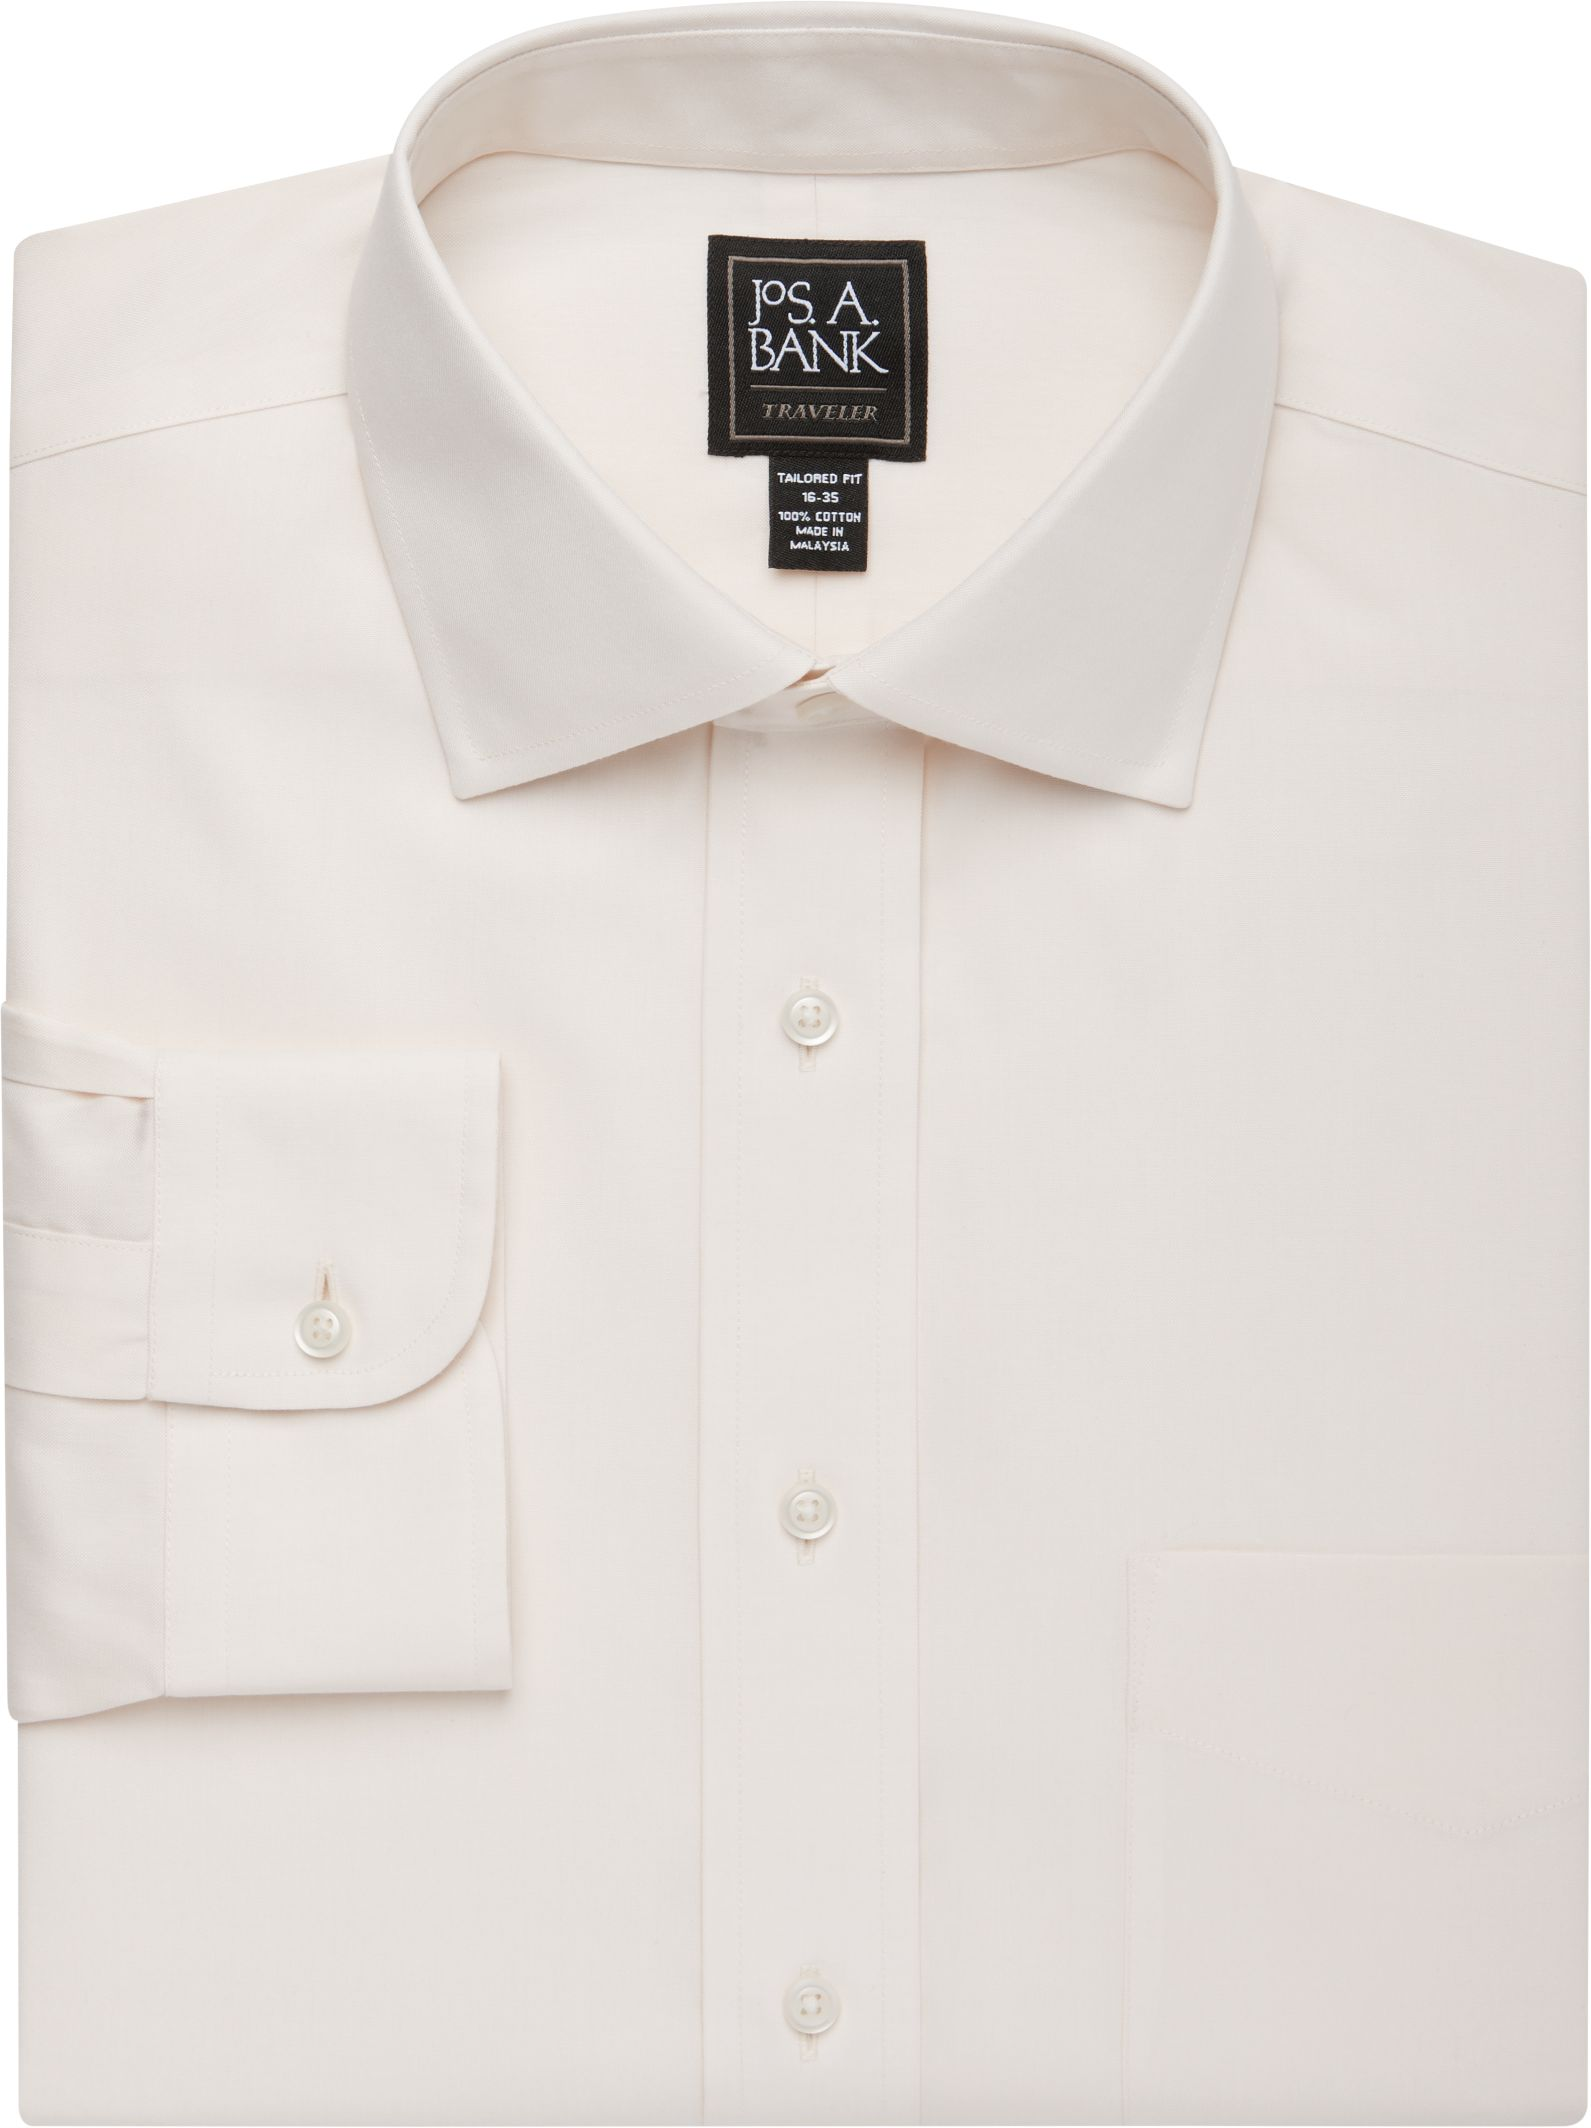 6054527a5 Traveler Collection Tailored Fit Spread Collar Dress Shirt  5AAY